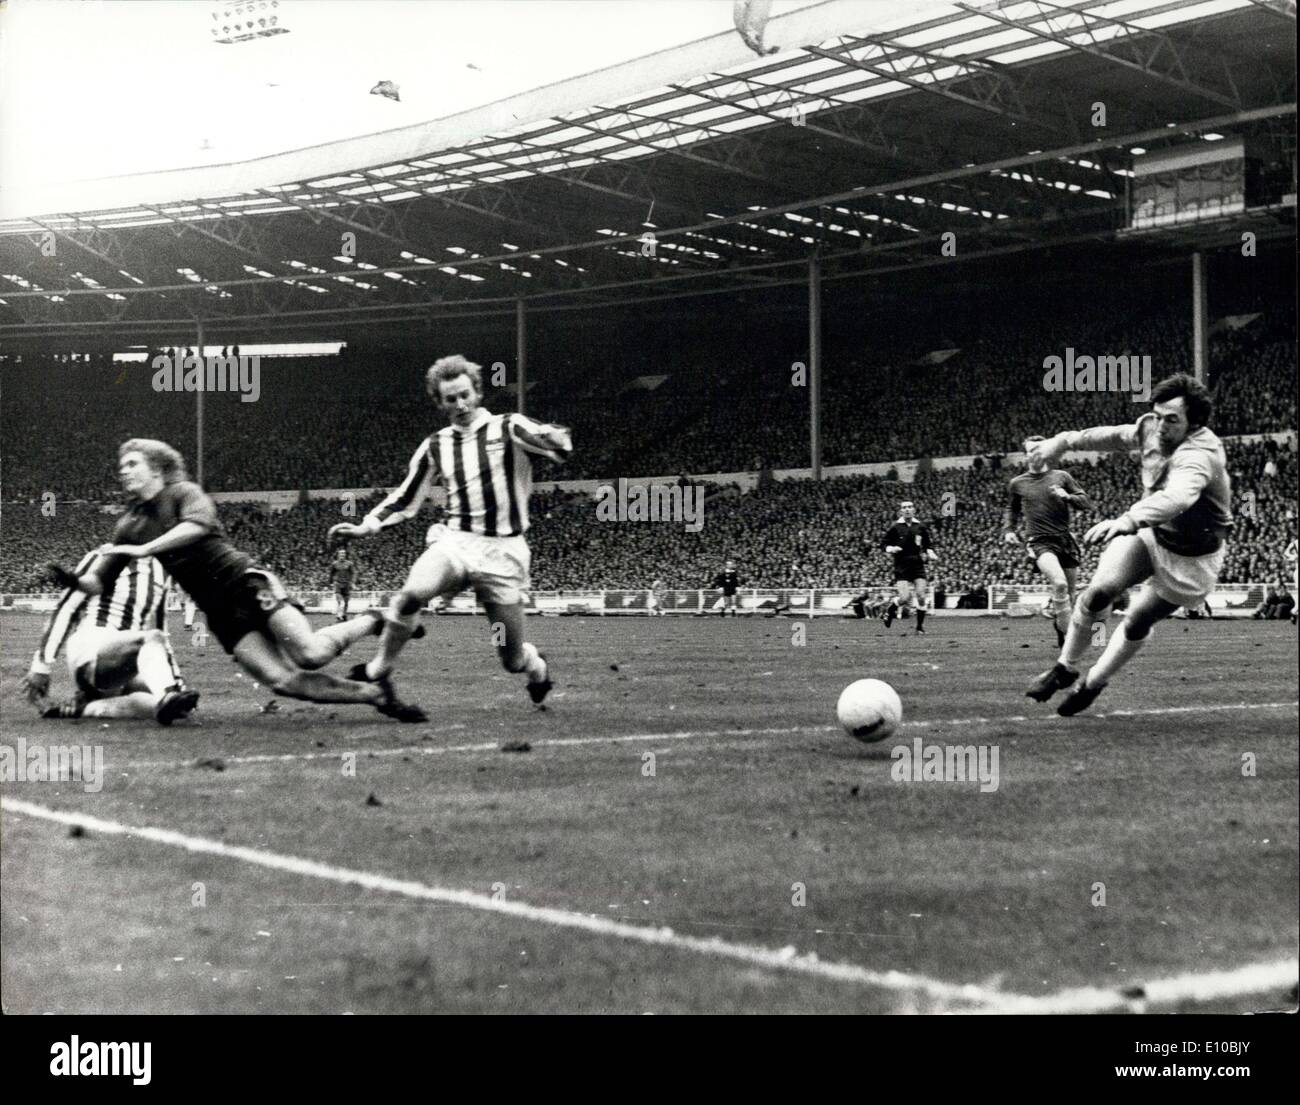 Mar. 04, 1972 - Stock City Beats Chelsea In League Cup Final At Wembley By 2-0. Photo Shows: Chris Garland the Chelsea inside right is sent crashing to the ground by Centre-half Dennis Smith as he shoots wide of Stoke Goalie Gordon Banks. - Stock Image